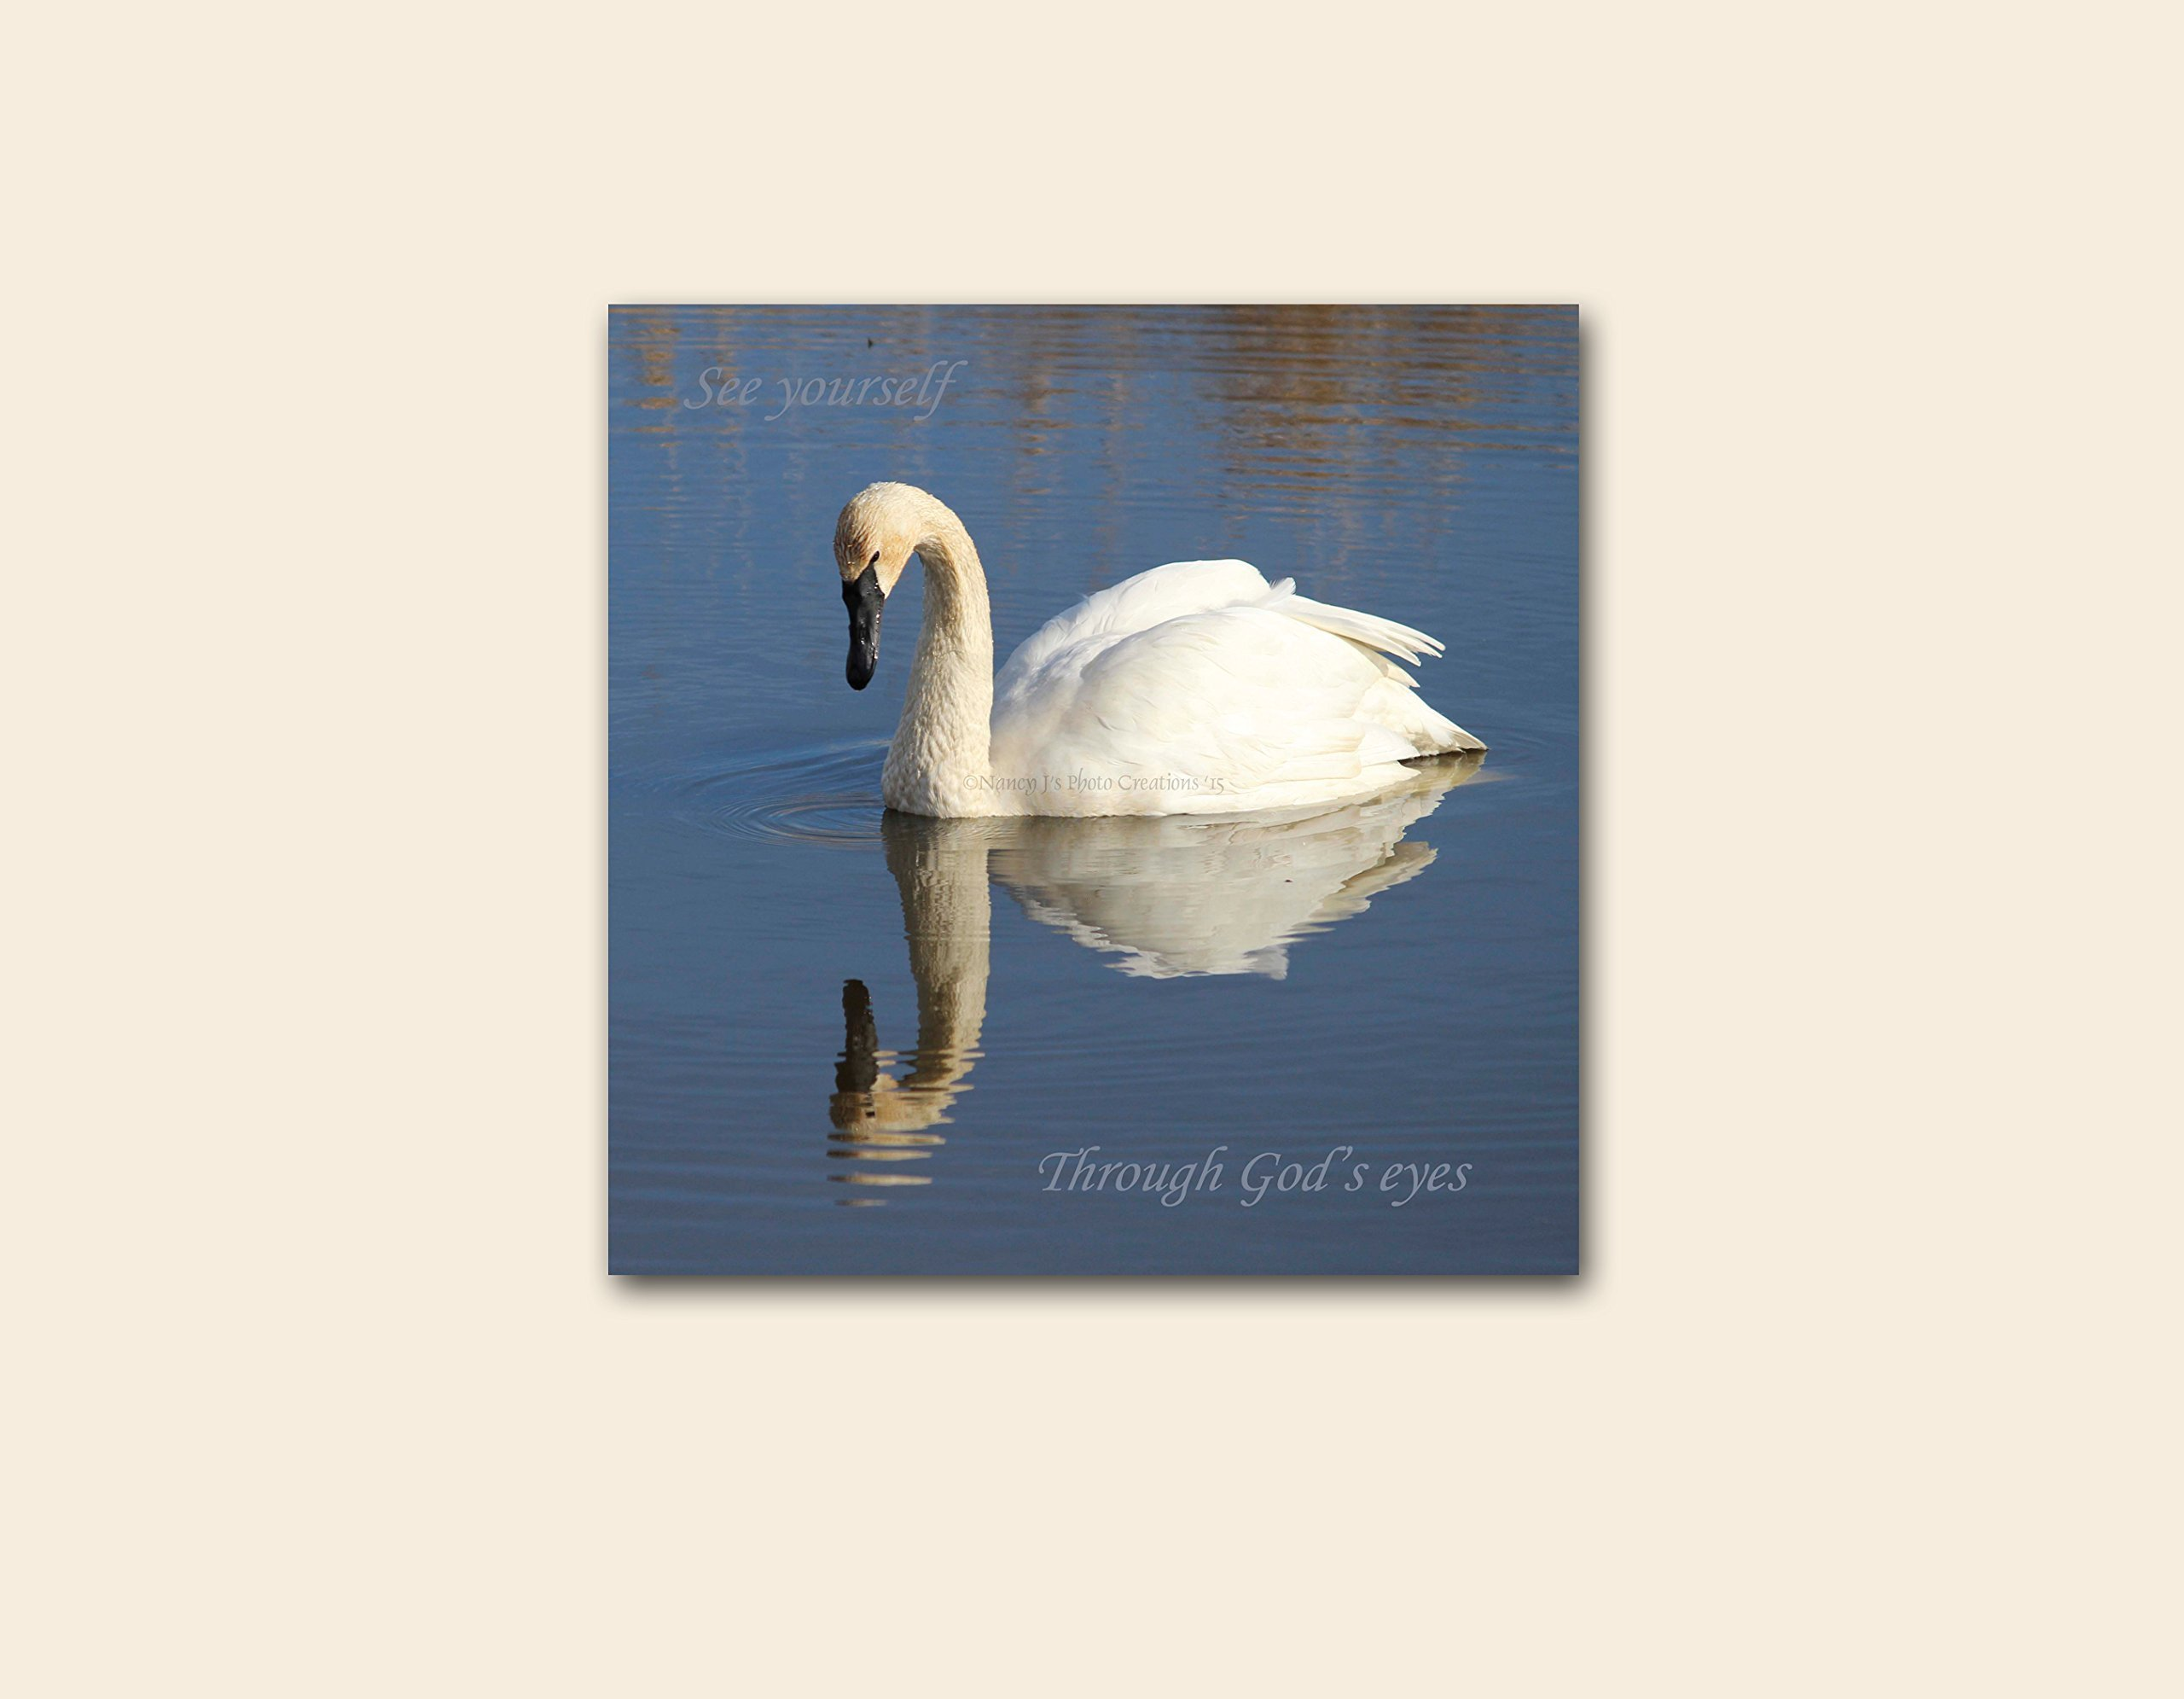 See Yourself Through God's Eyes Swan Photo on CANVAS Motivational Wall Art Nature Photography White Blue Home Decor Christian Gift Idea 12x12'' IN STOCK Ready to Ship & Hang